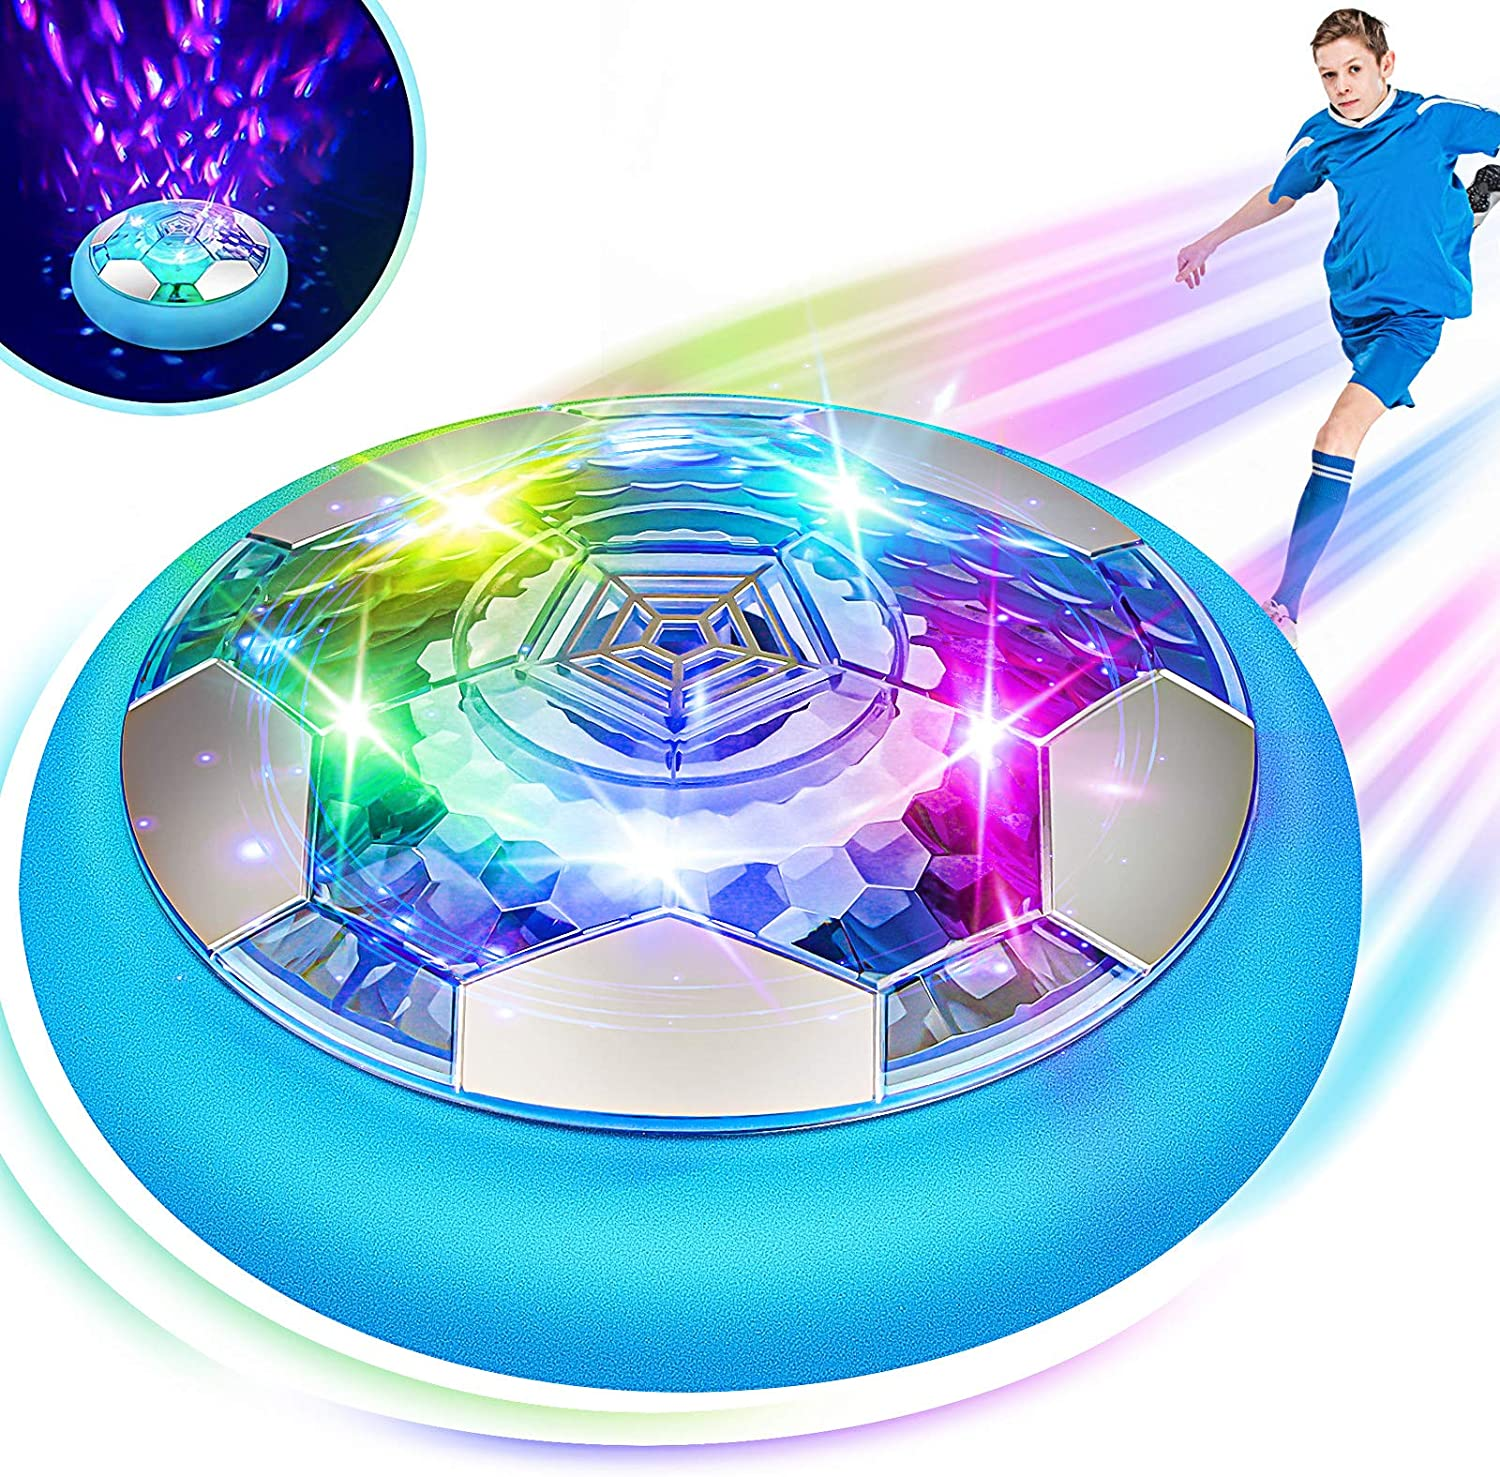 Blasland Hover Soccer Ball - Kids Toys Rechargeable Air Soccer, New Floating Soccer with Led Starlights, Foam Bumpers to Protect Furniture, Indoor Hover Ball, Best Football Toy Gift for Boys & Girls